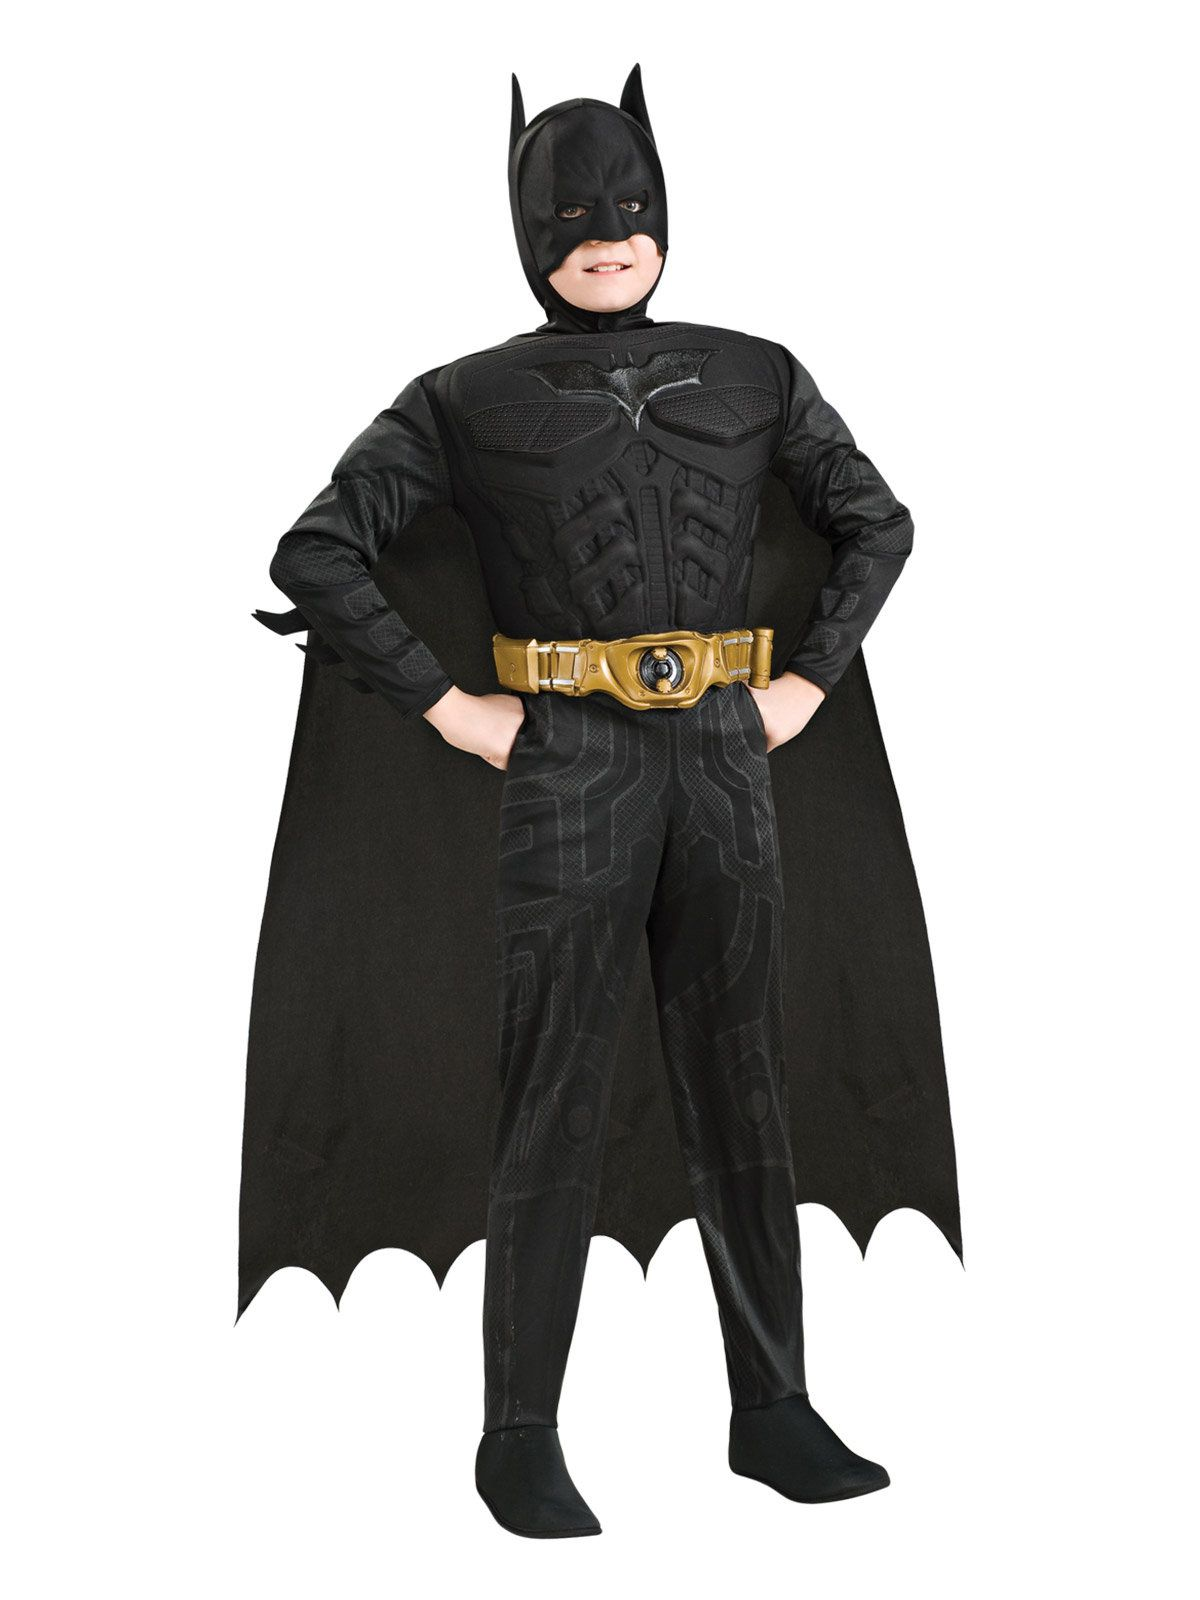 Deluxe Batman Dark Knight Rises Costume Toddler  sc 1 st  Wholesale Halloween Costumes & Deluxe Batman Dark Knight Rises Costume Toddler - Boys Costumes for ...